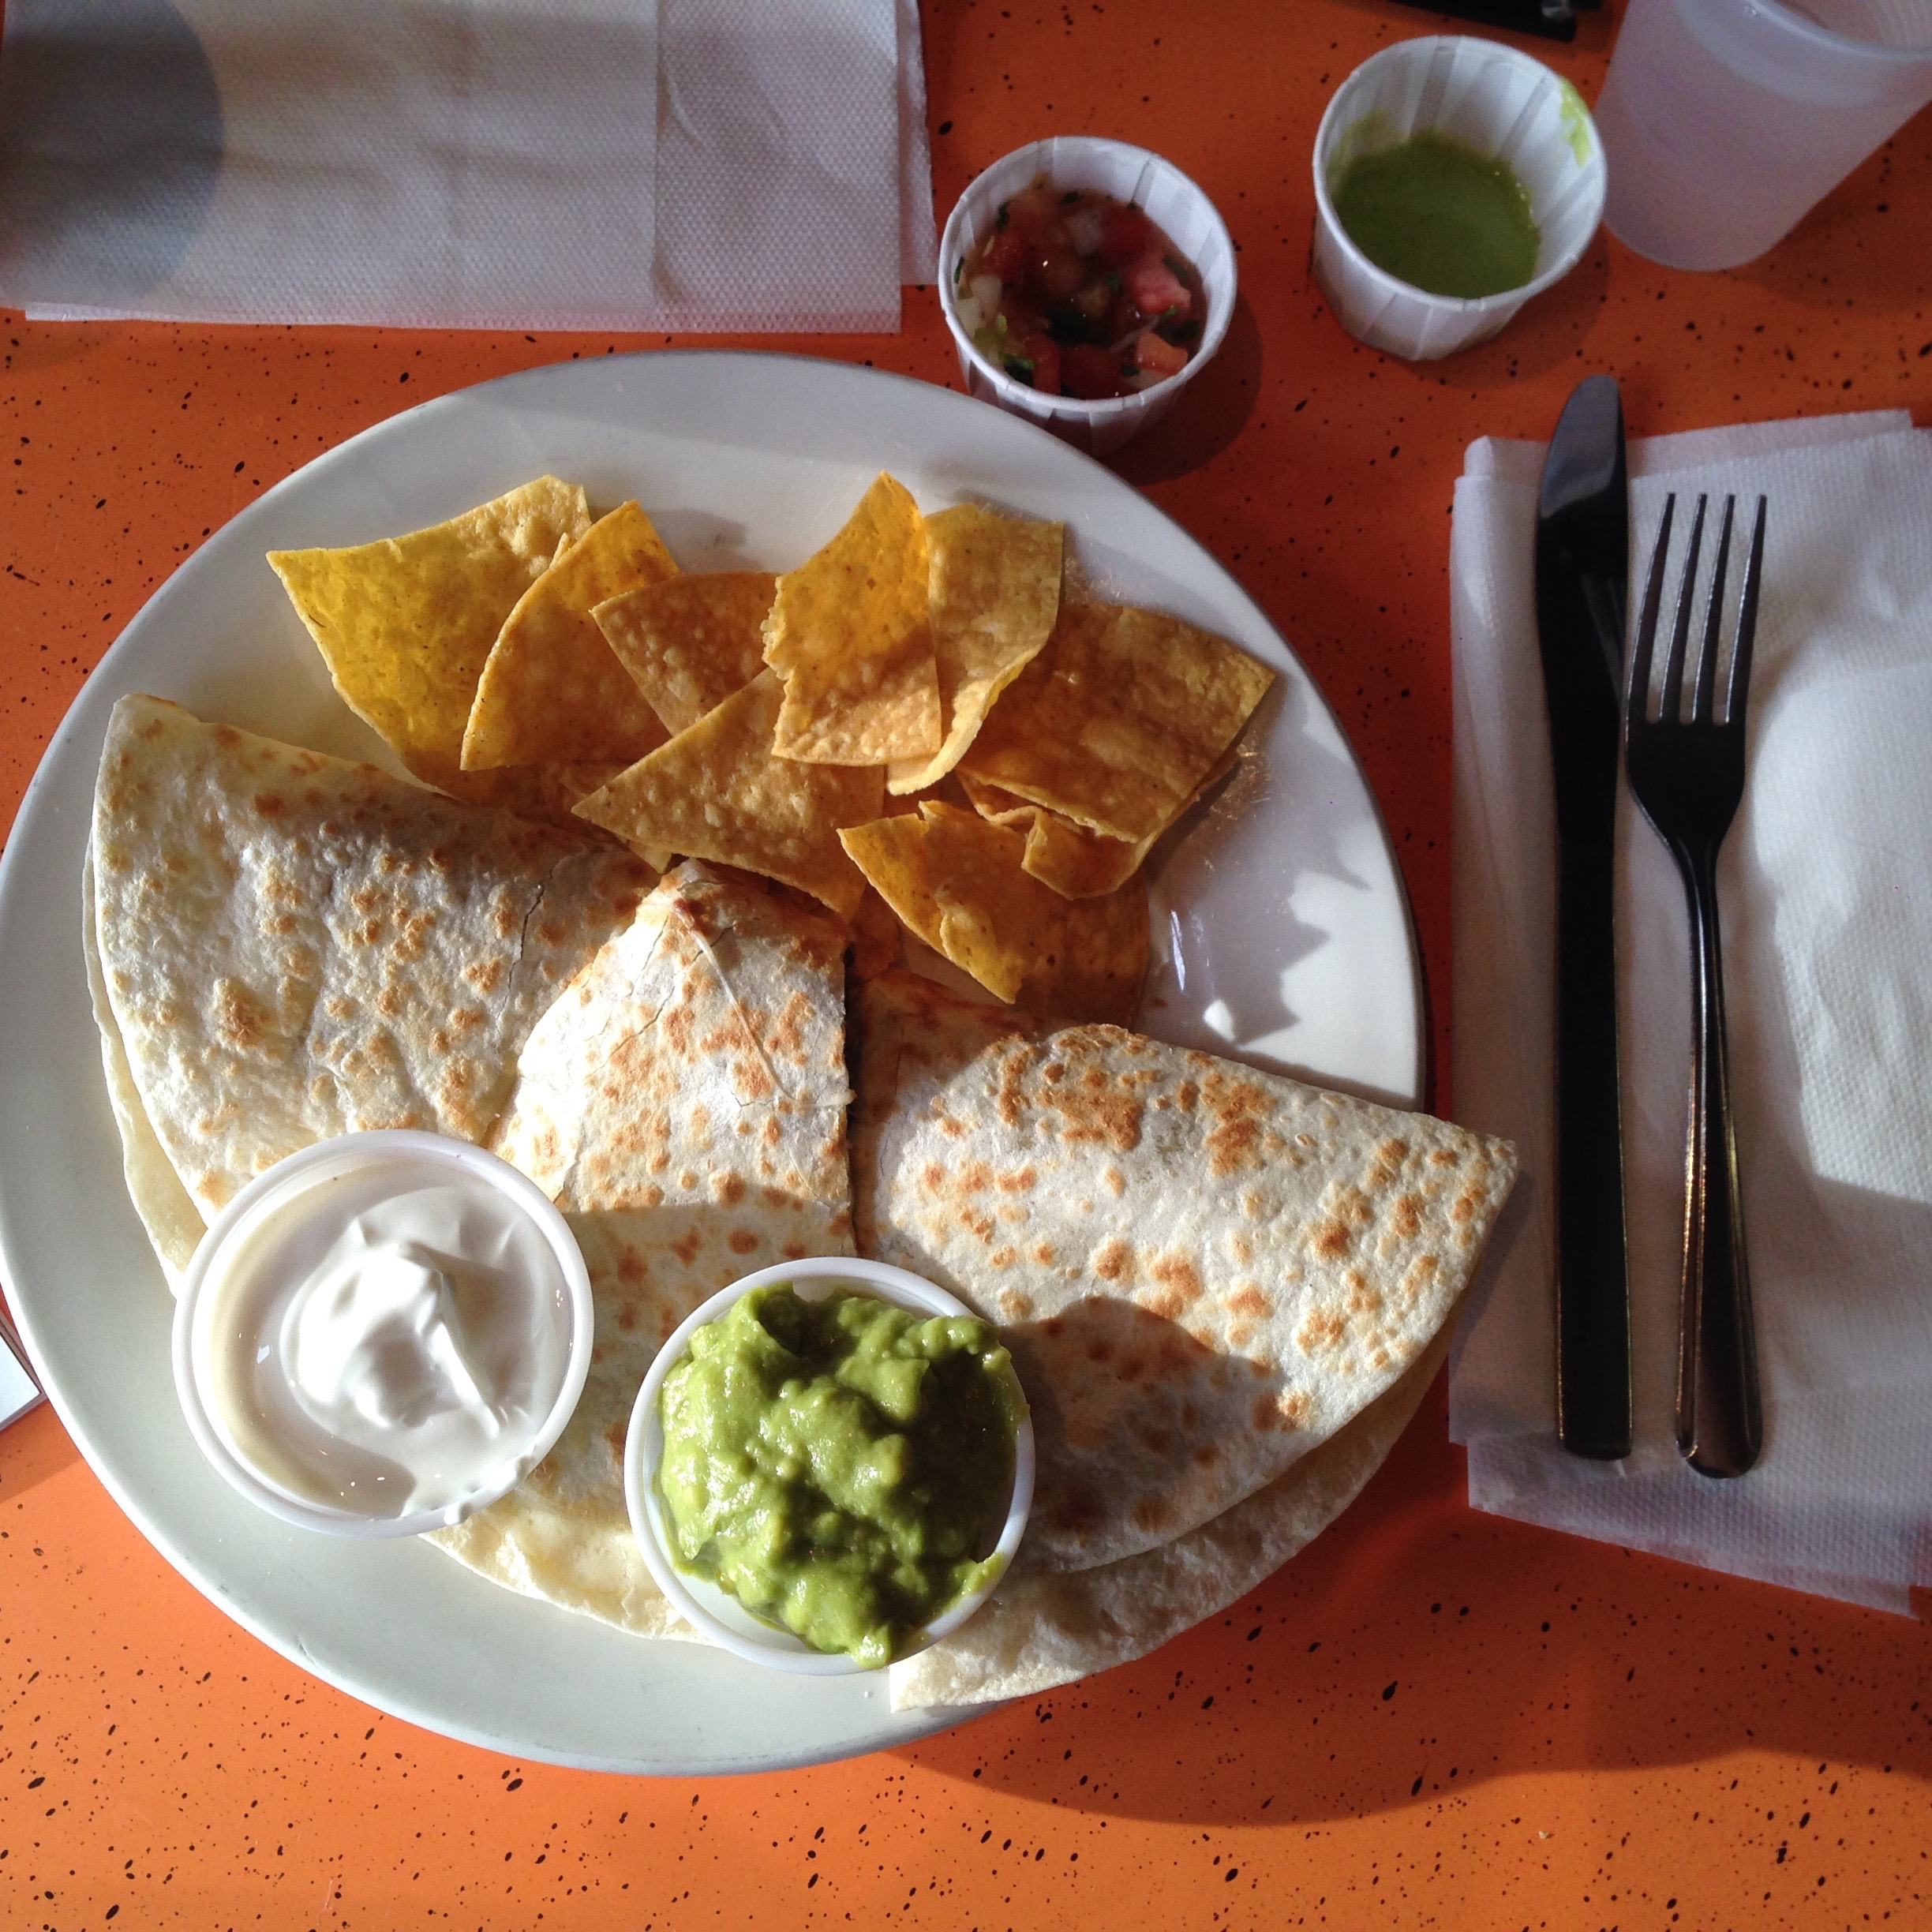 steak quesadilla with a side of sour cream and guac - perfection.